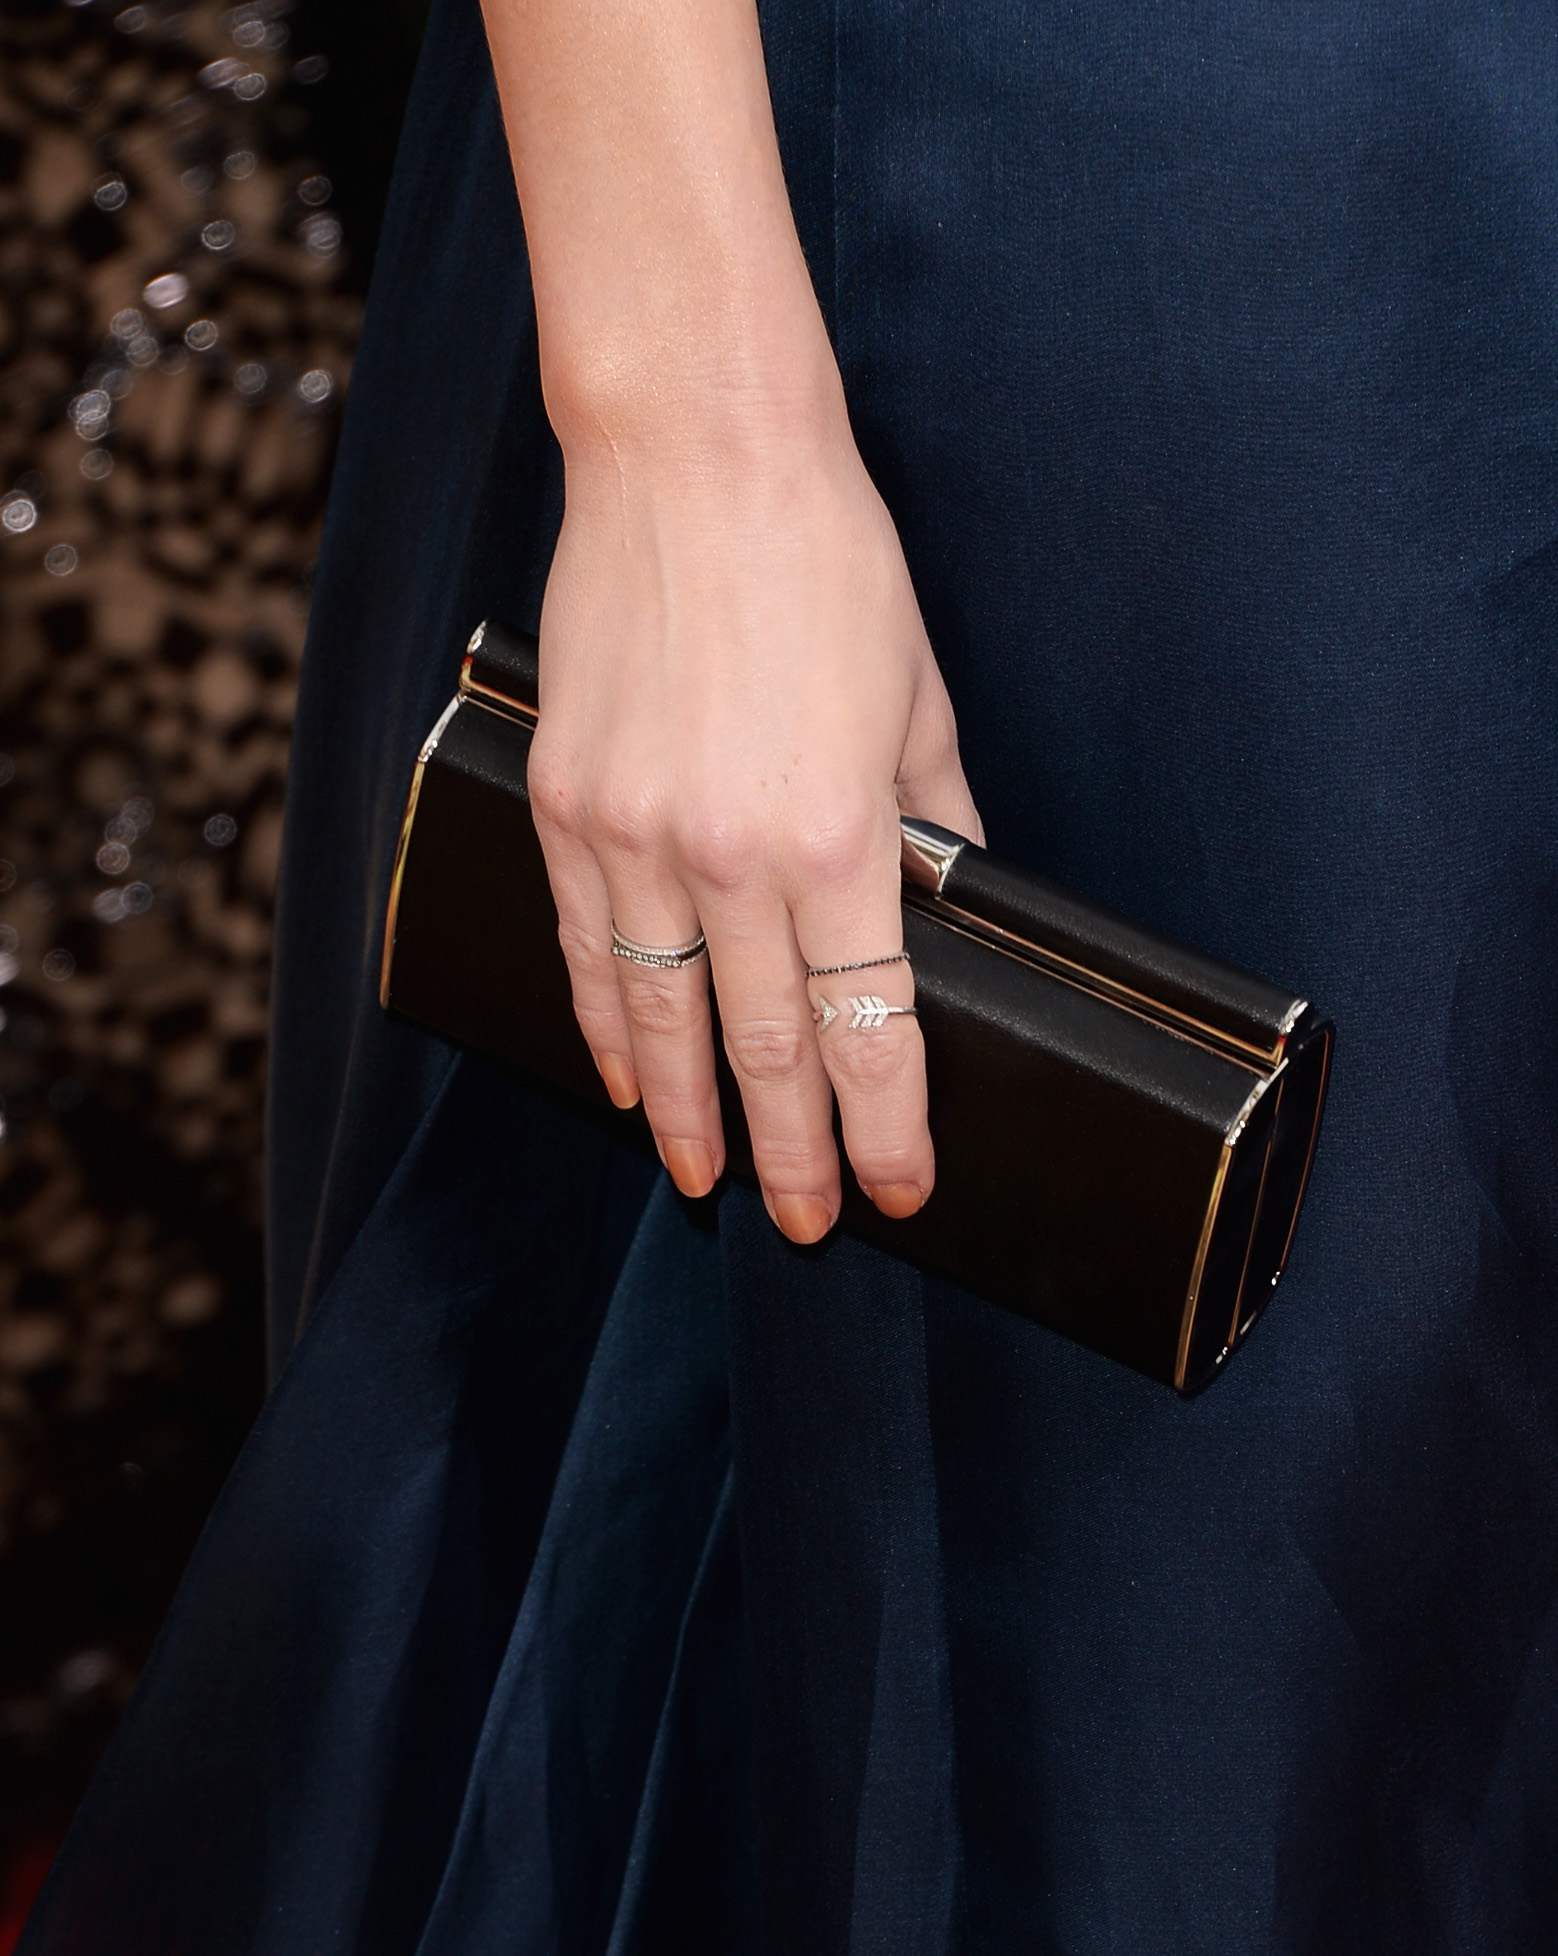 Amber Heard kept the colors dark with a black Versace clutch to accompany her navy gown.